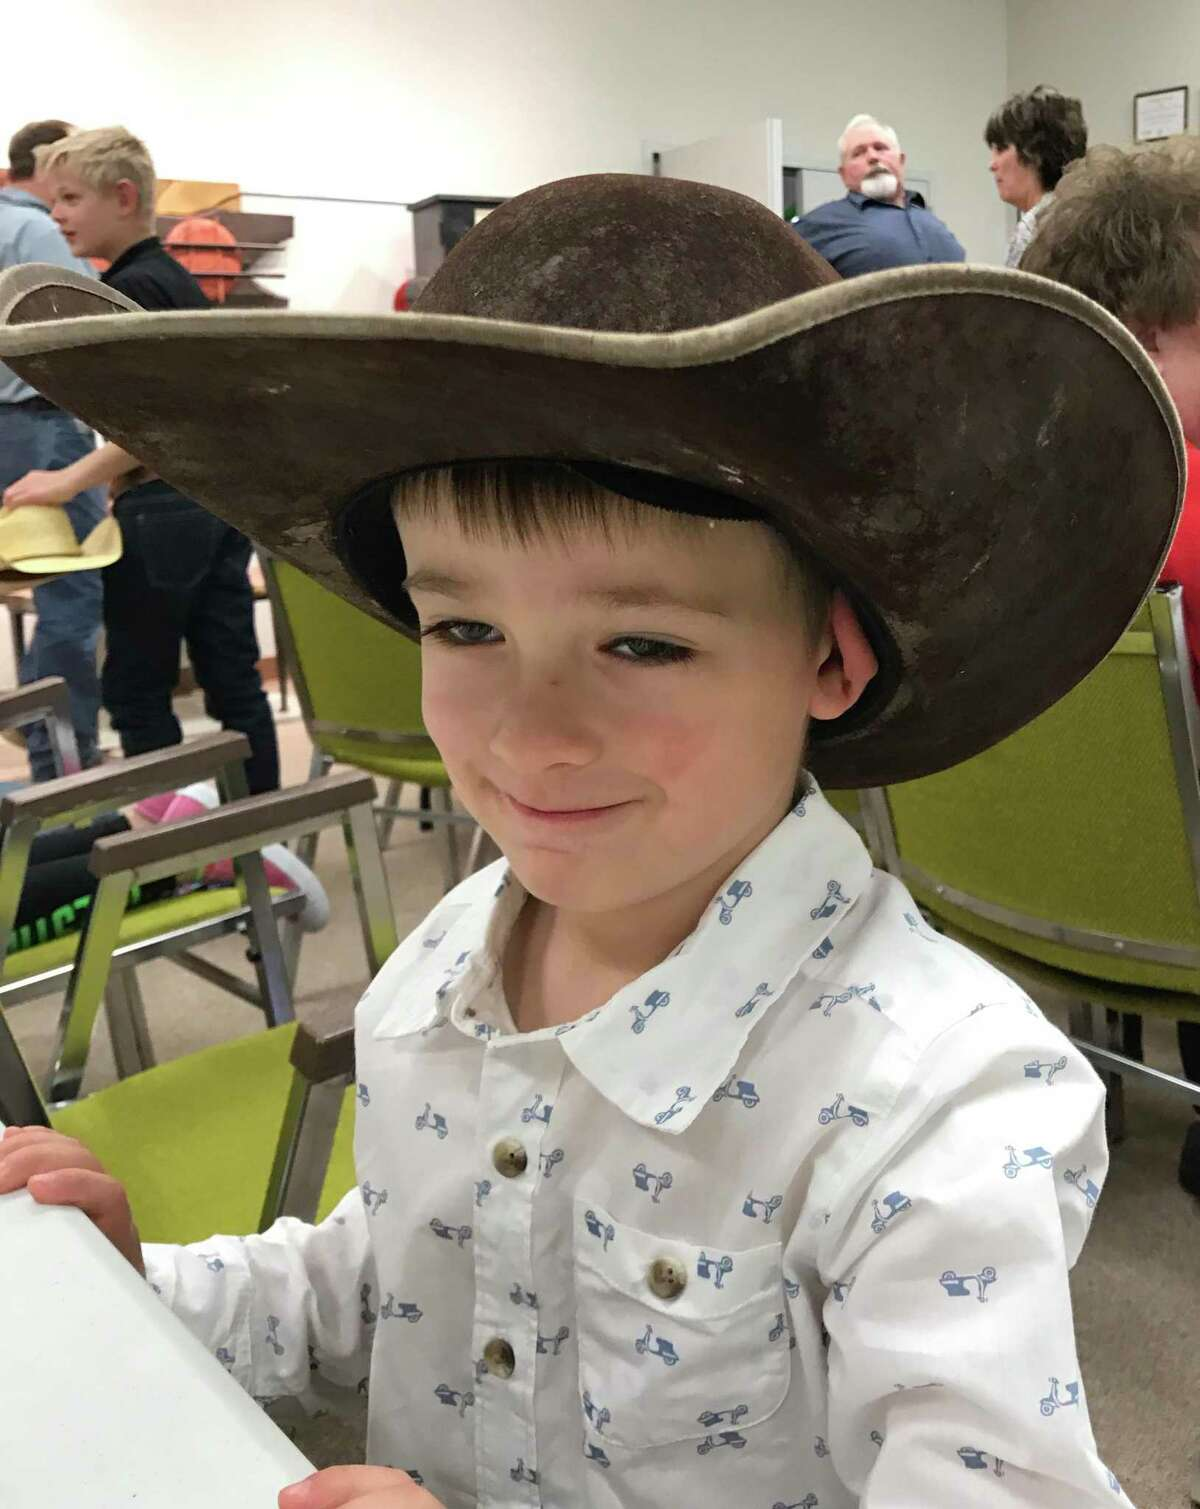 Three-years-old back in 2017, Kelton Graves of Lipscomb was already a Texas cowboy.